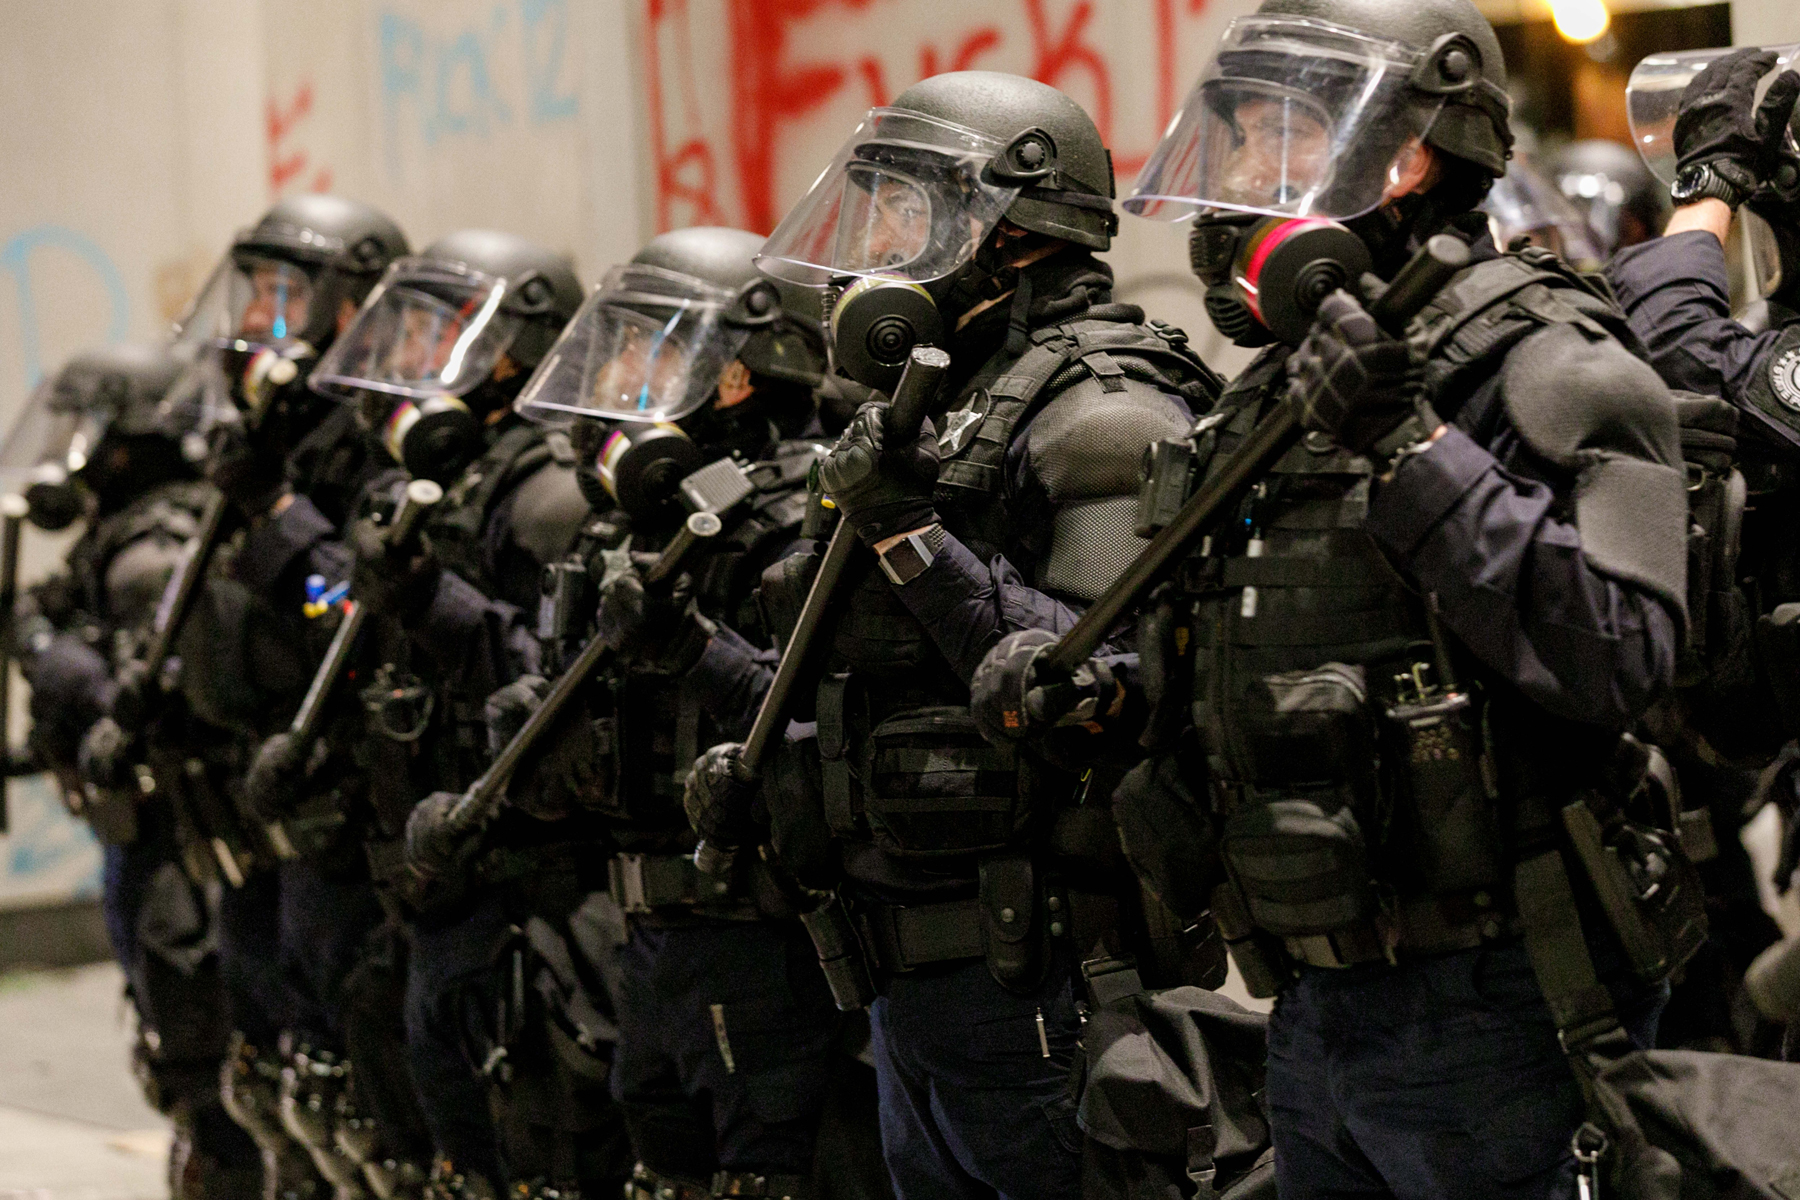 Portland Oregon Progressive City Brutal Police Force Rolling Stone